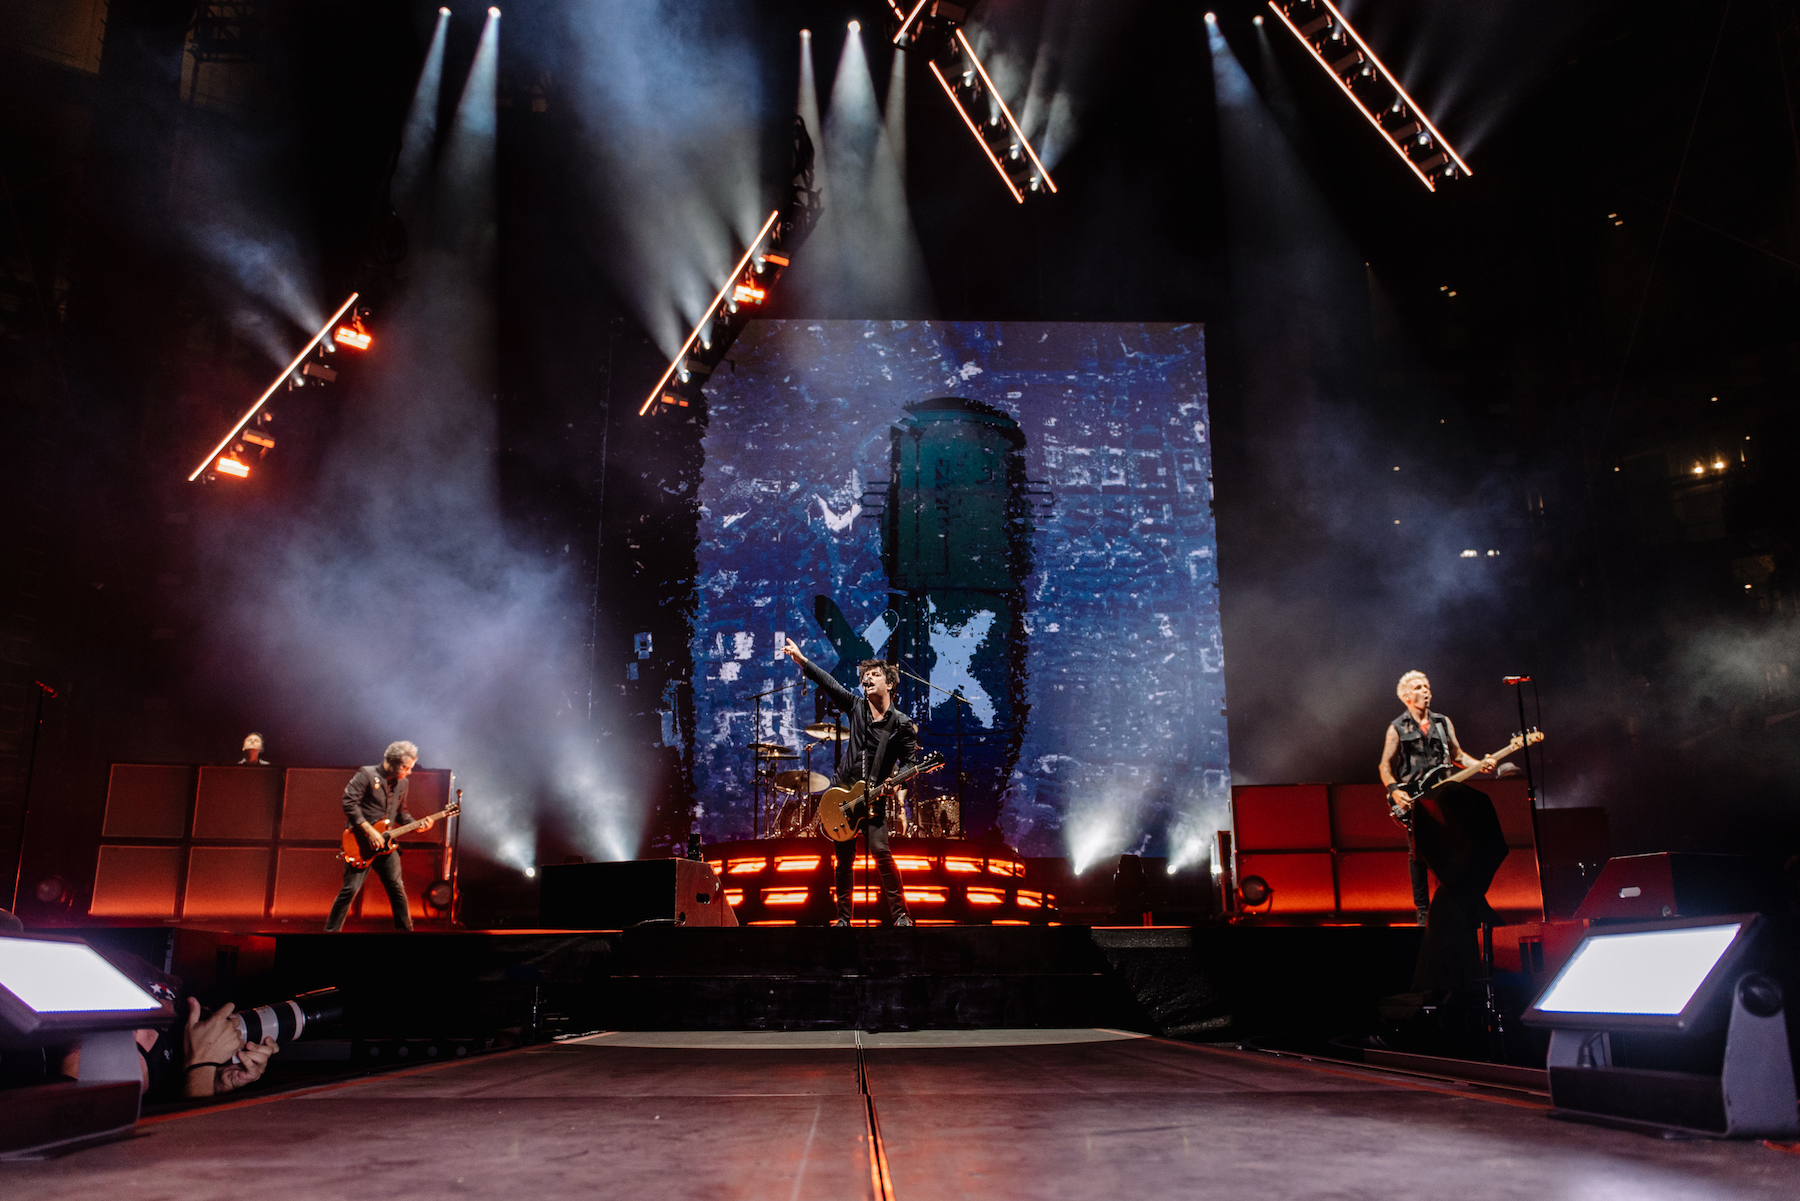 Green Day, Weezer, Fall Out Boy Launch 'Hella Mega' With Epic, Emotional Dallas Concert